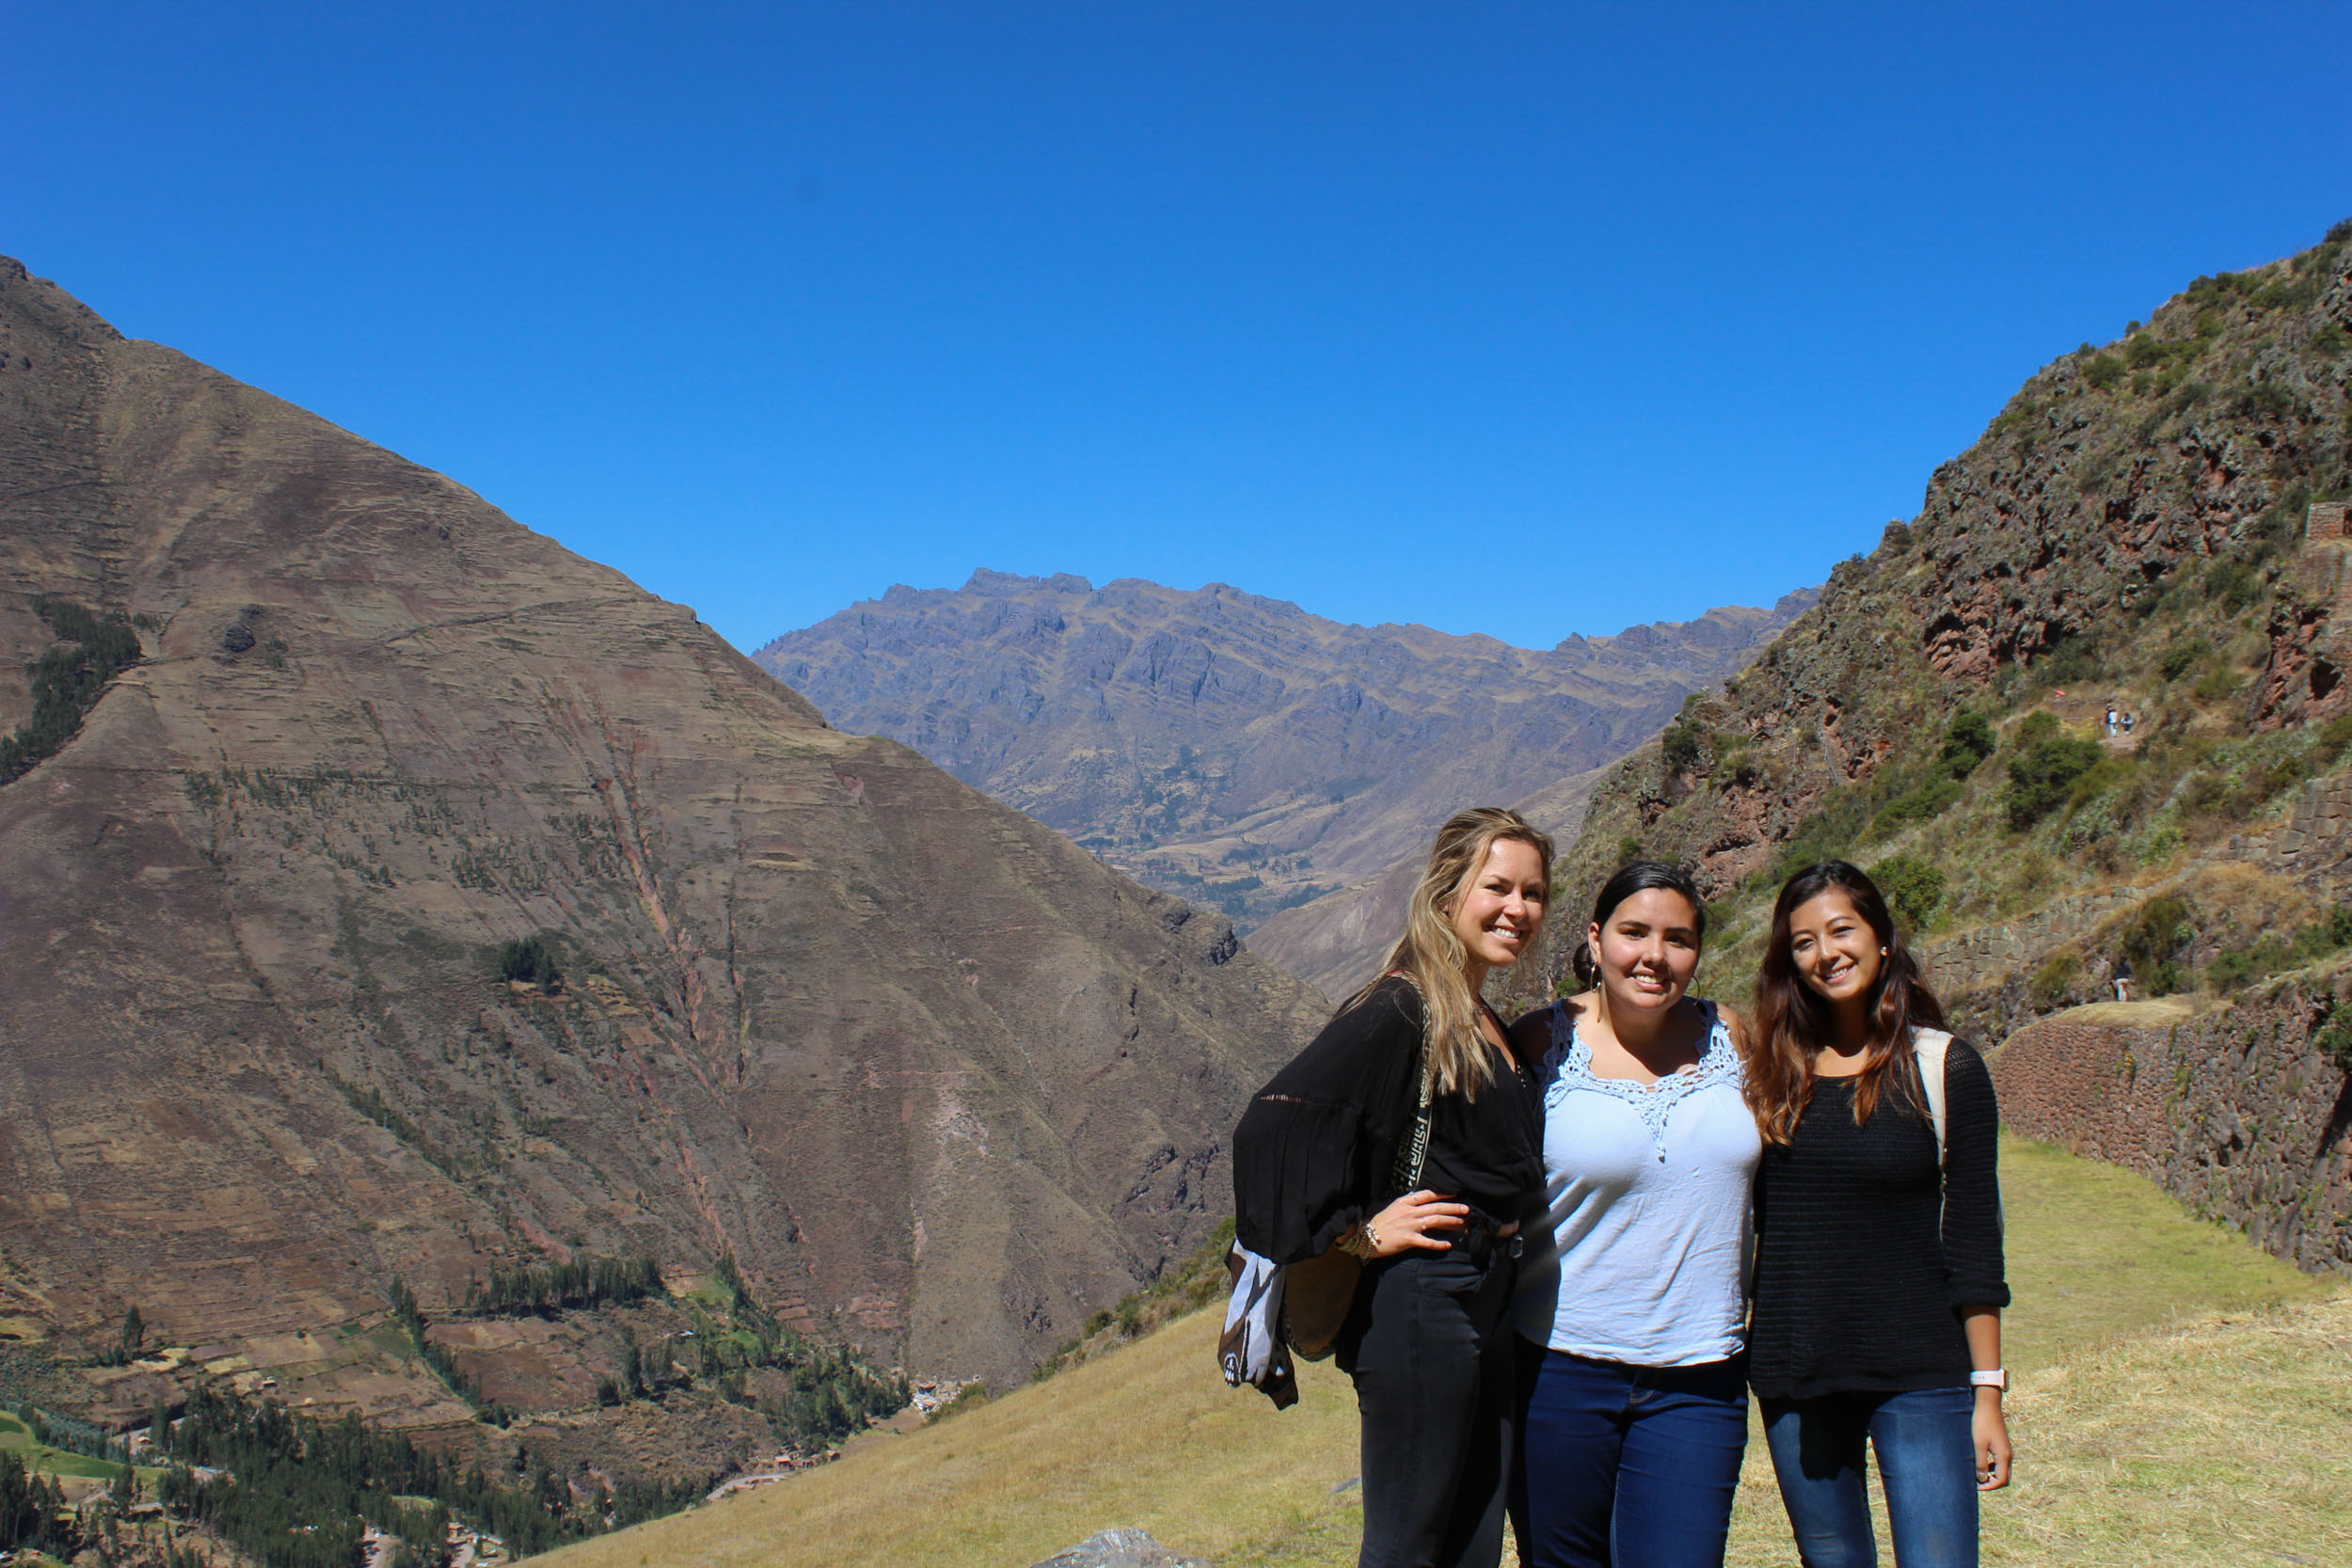 Left to right, Oyler, Annelise Mrianda and Joshi in the sacred valley of the Incas at an archaeological site called Pisac.